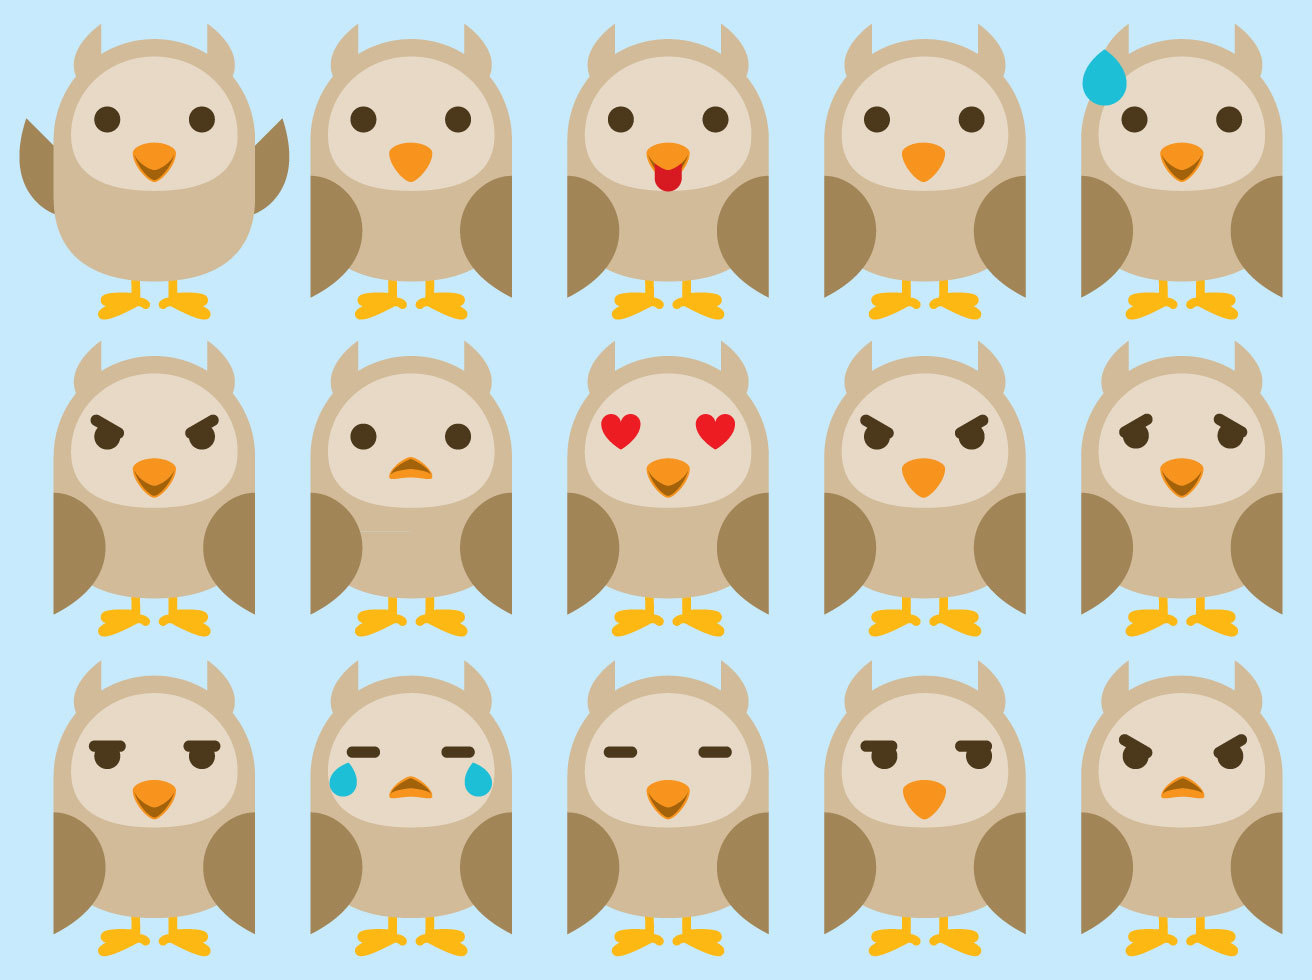 Owl Emoticon Vectors